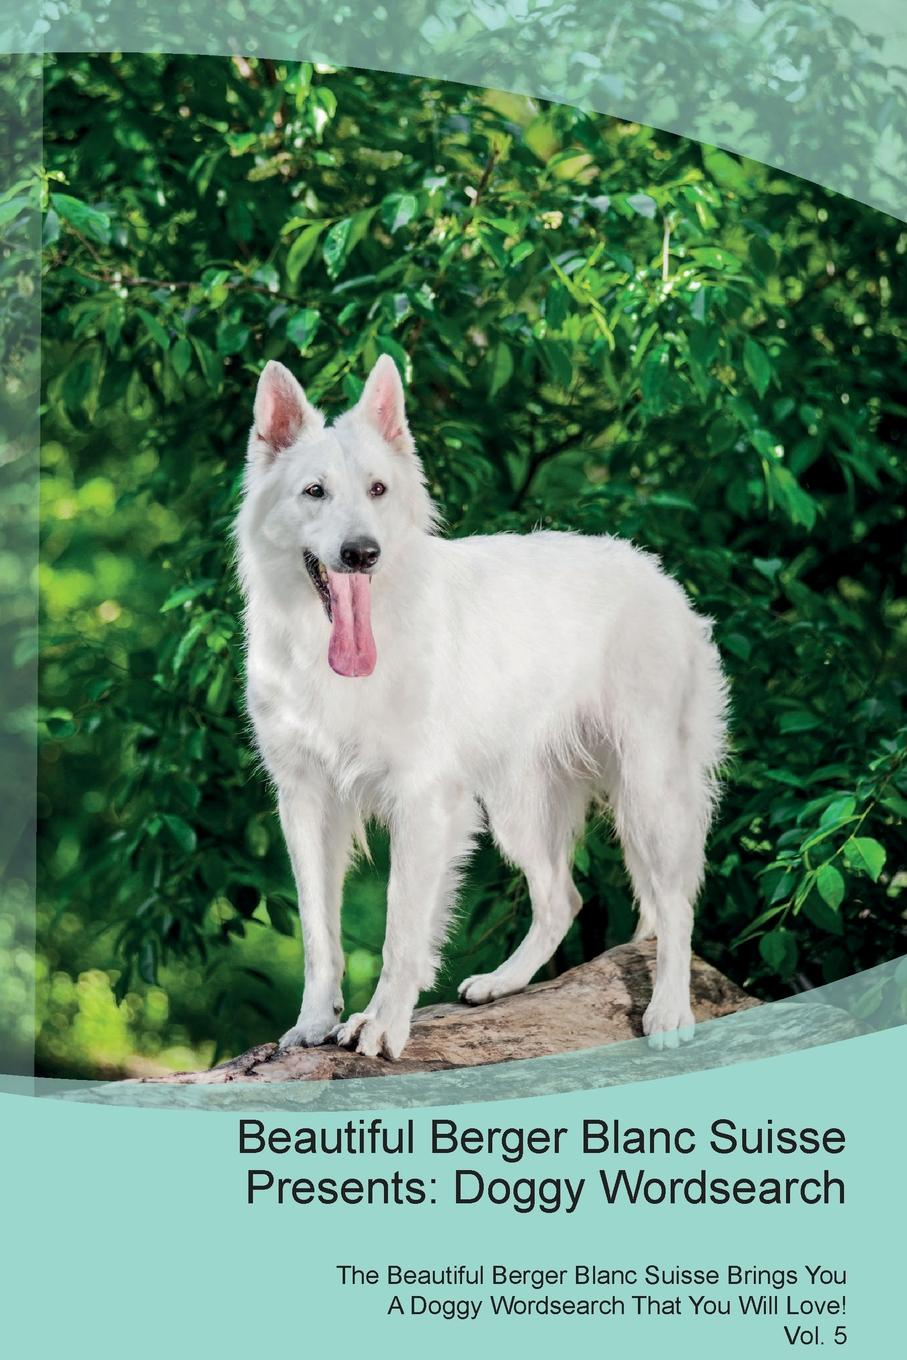 Doggy Puzzles Beautiful Berger Blanc Suisse Presents. Wordsearch The Brings You A That Will Love! Vol. 5